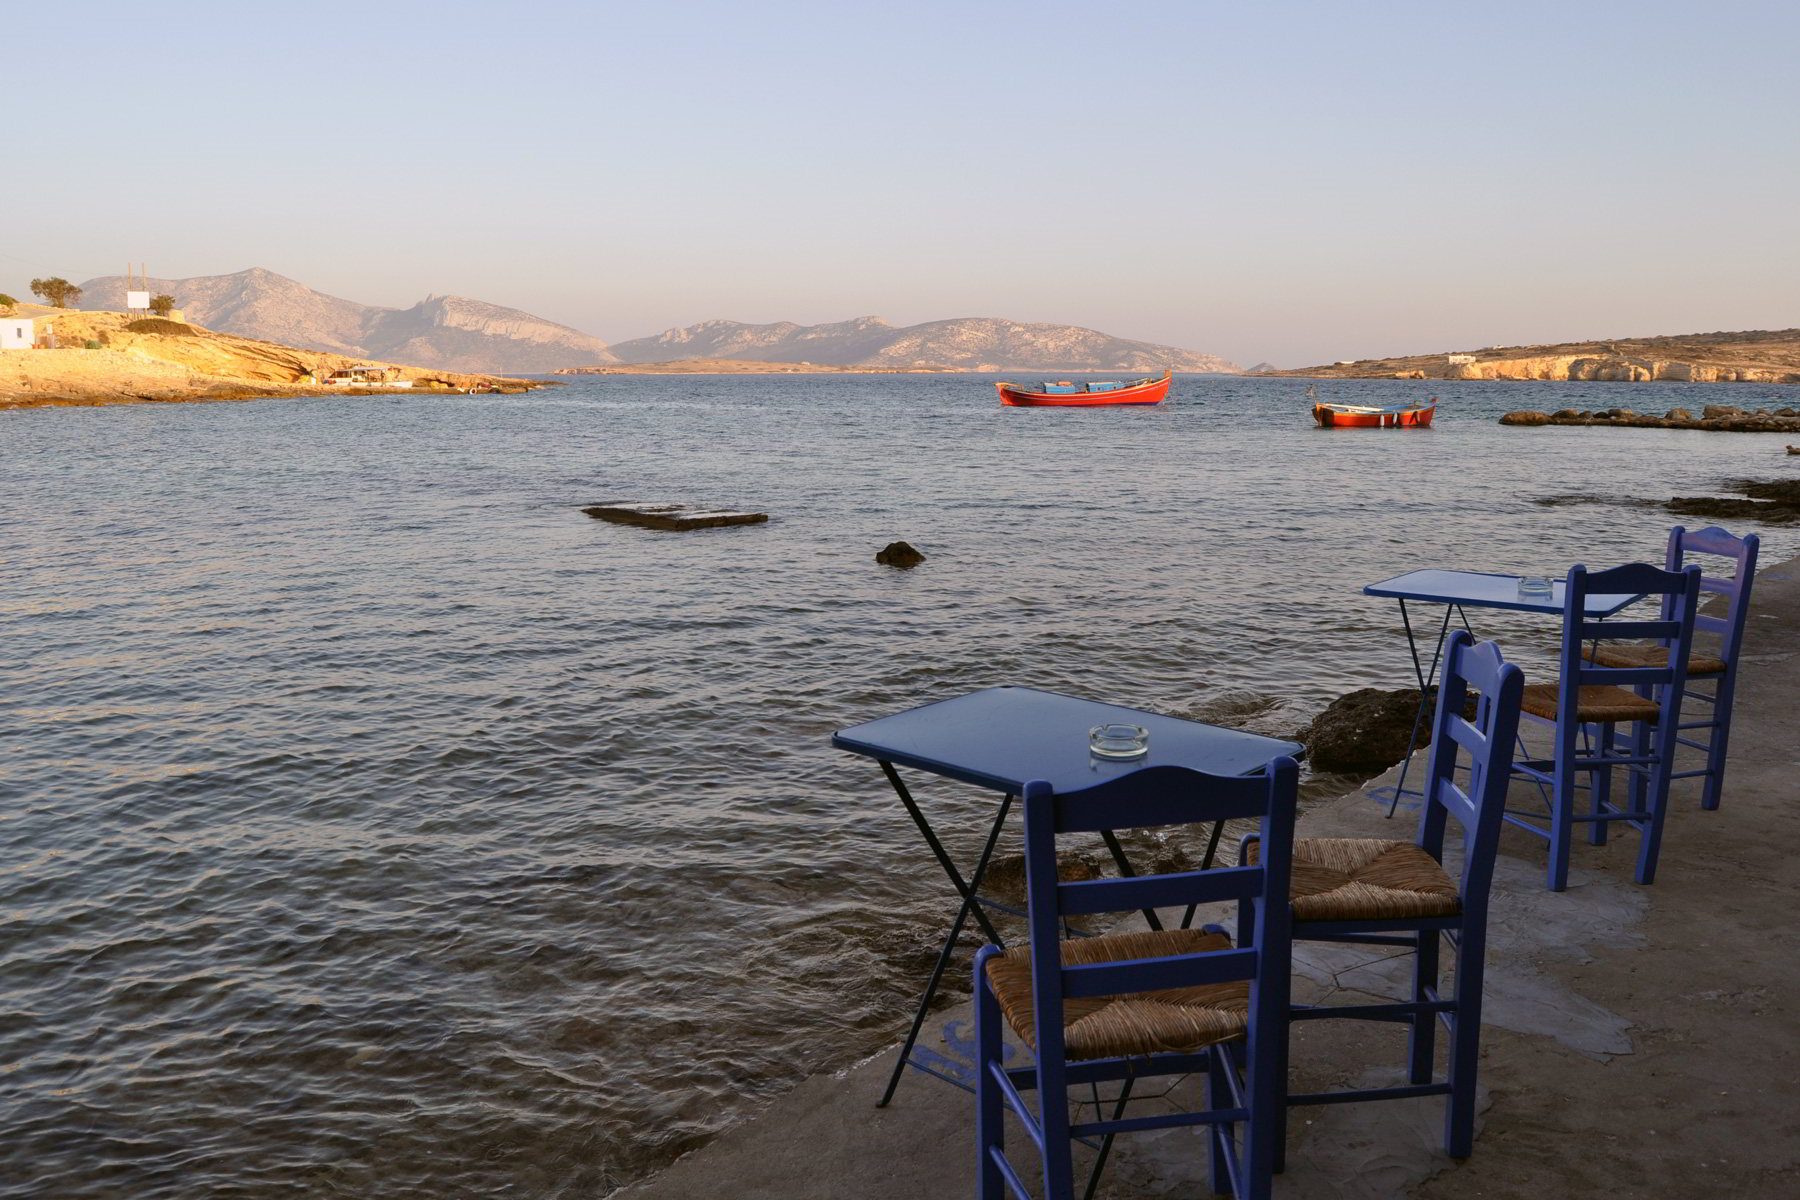 Blue chairs and a sunset in Koufonisia